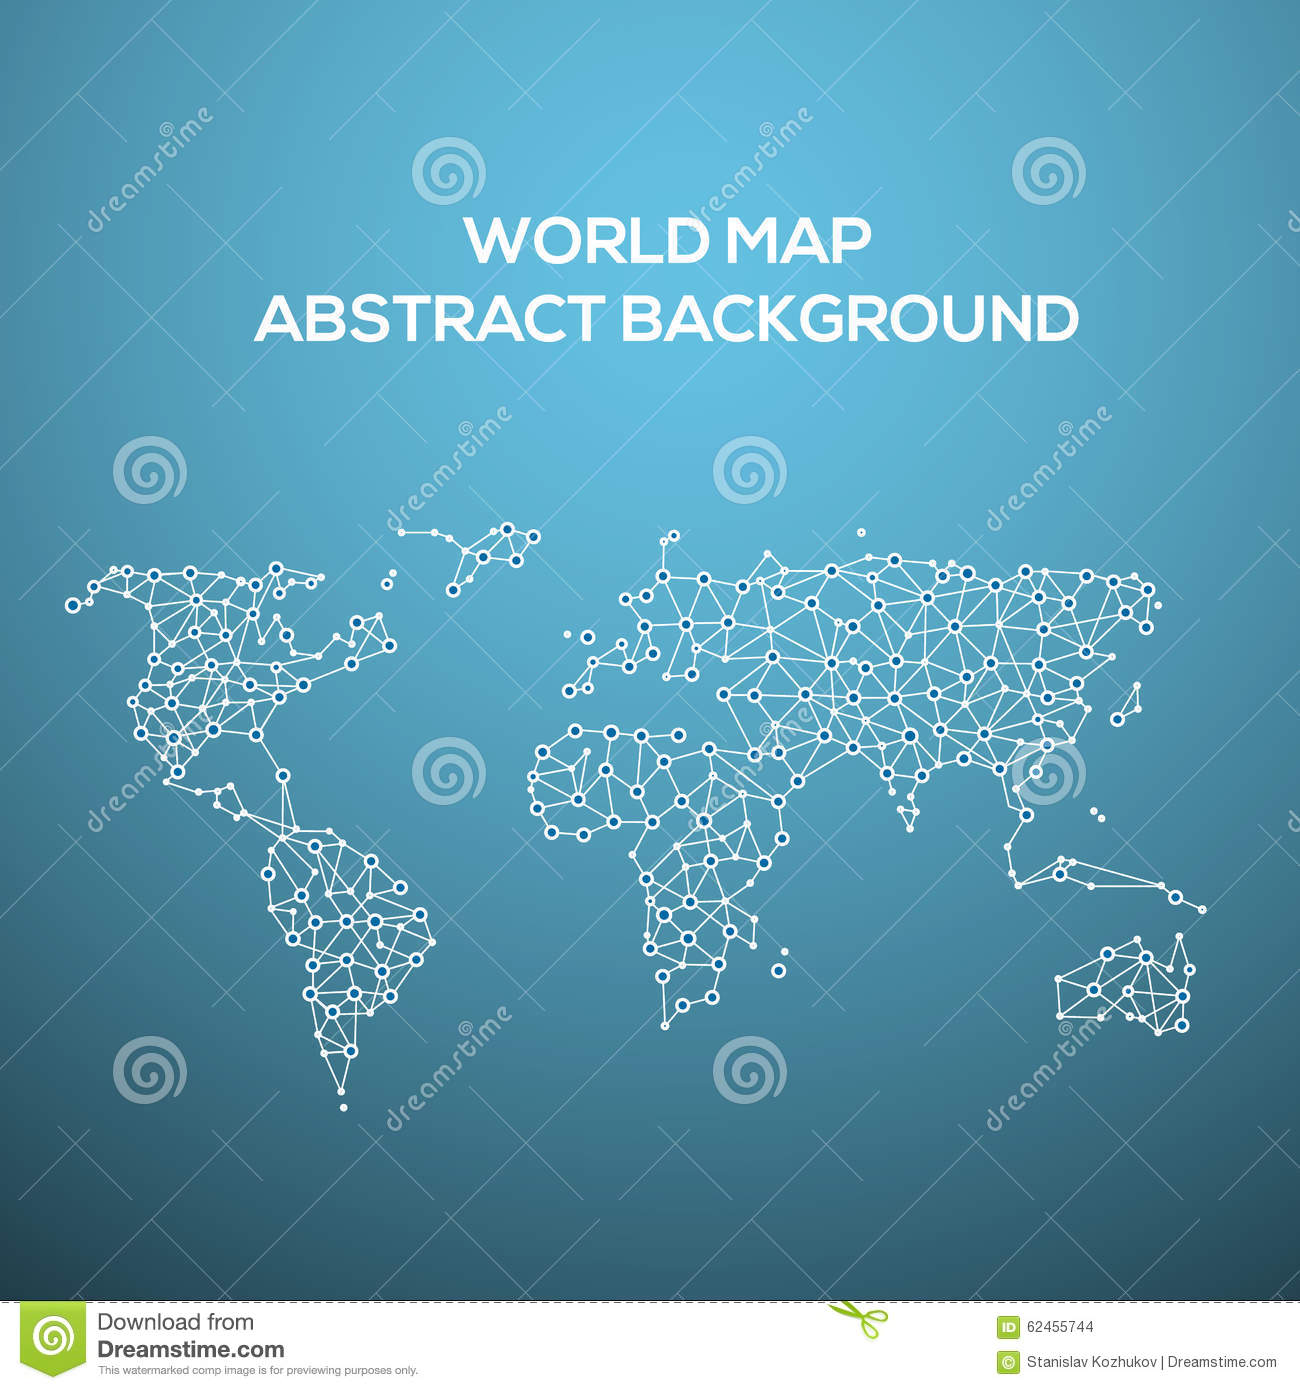 world map background vector - photo #10